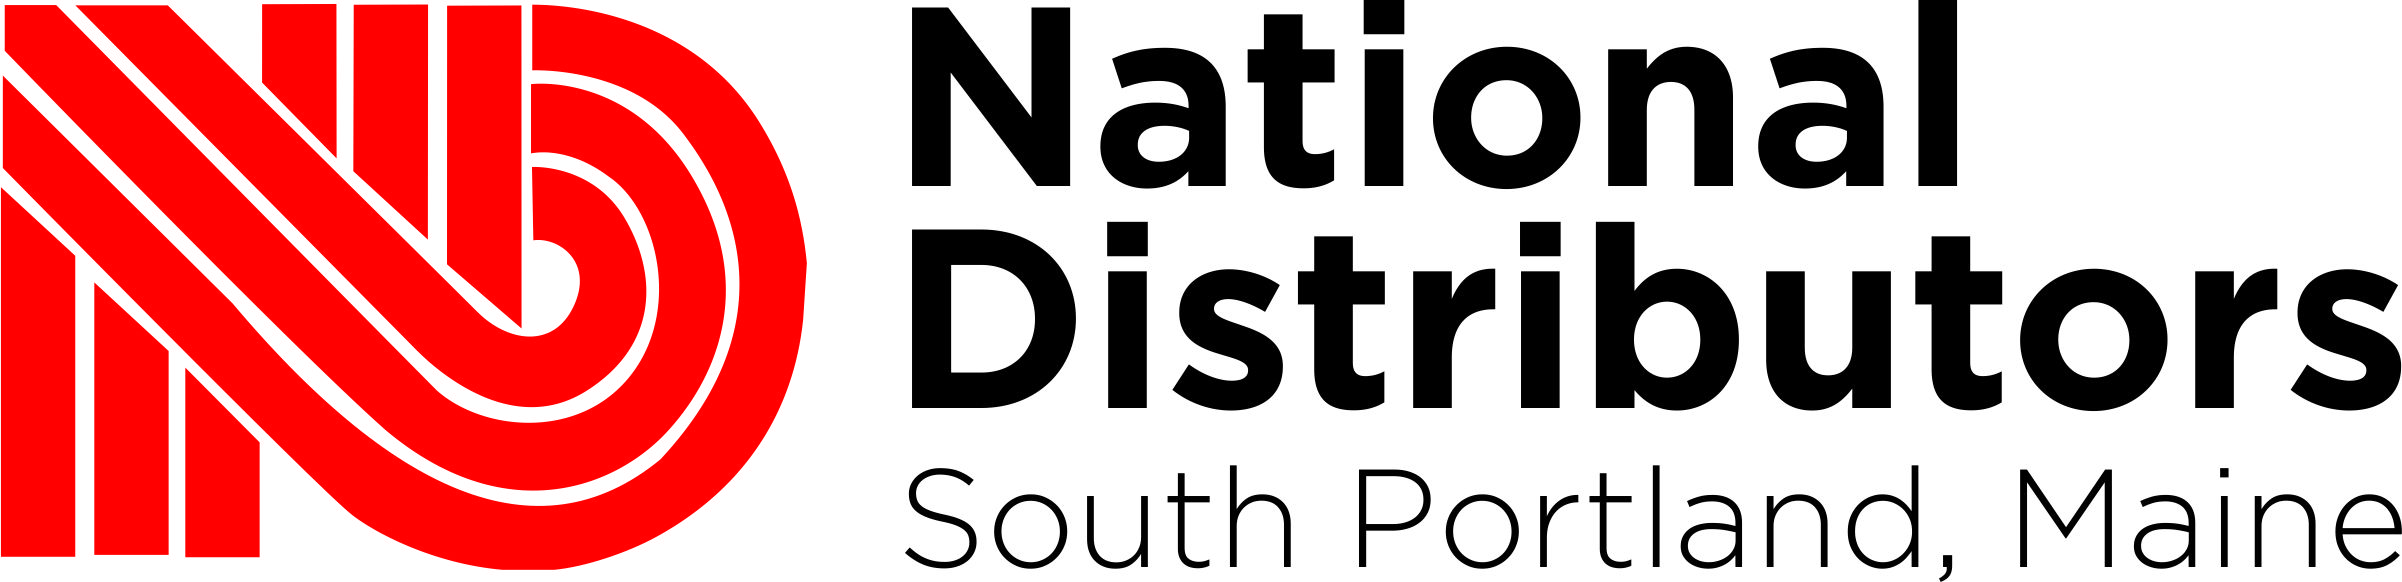 National Distributors, Inc.